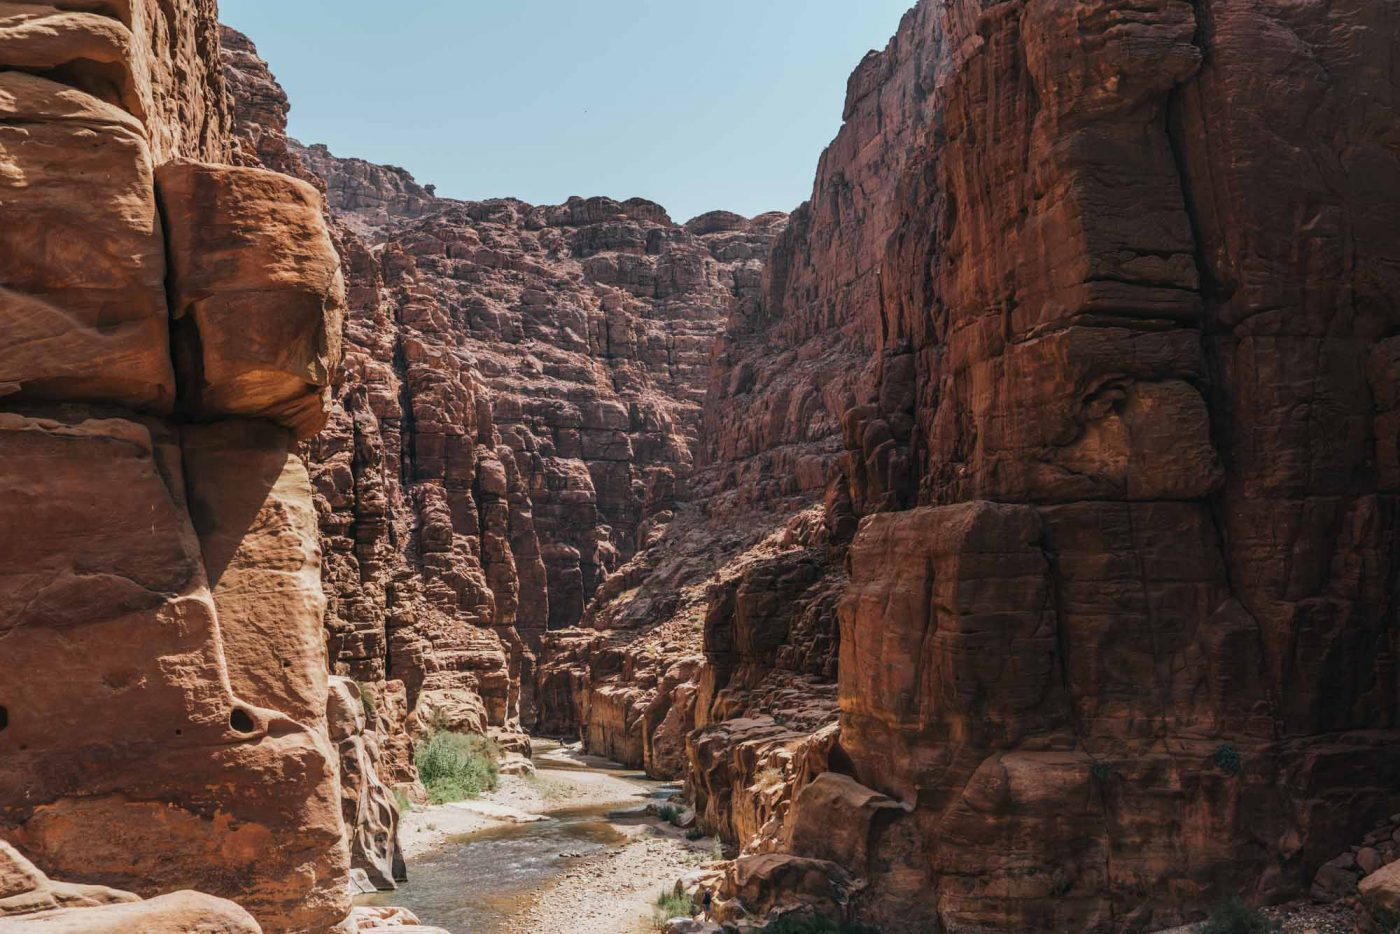 Ecotourism in Wadi Mujib Jordan is on the rise